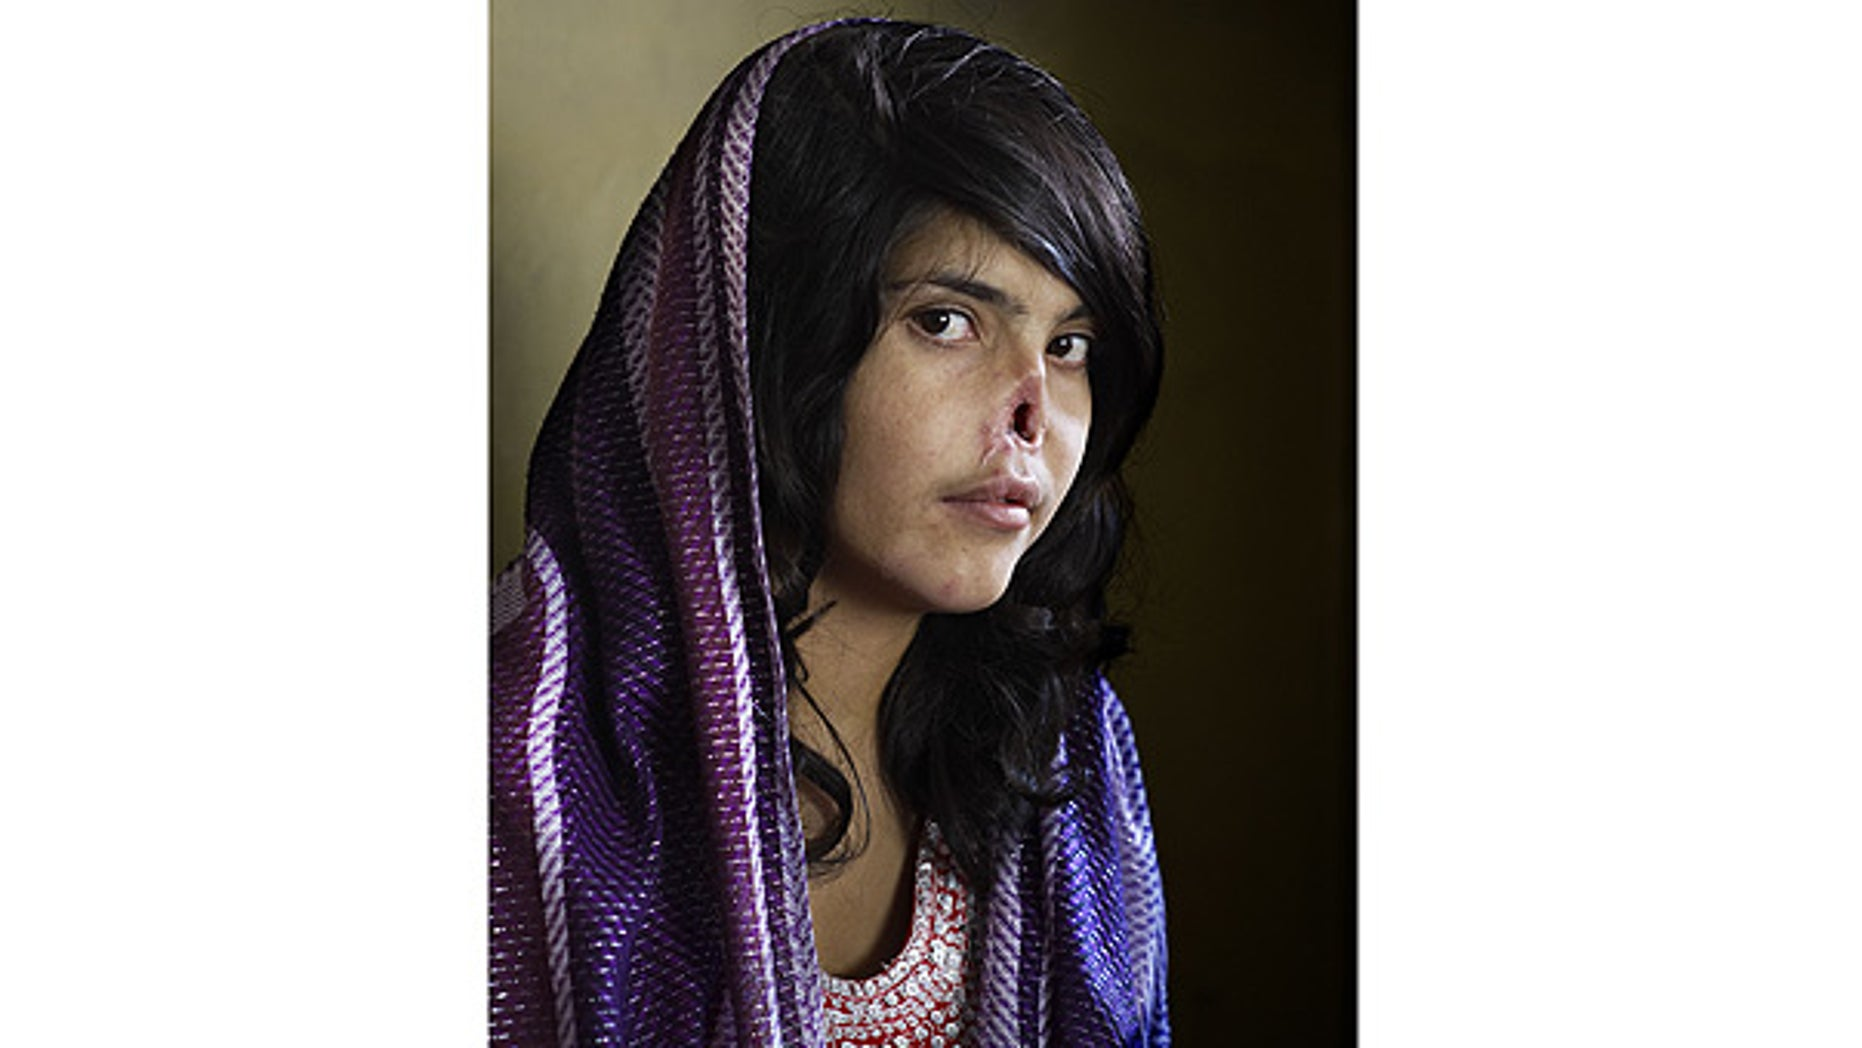 World Press Photo of the Year 2010 shows Bibi Aisha, an 18-year-old woman from Oruzgan province, Afghanistan.